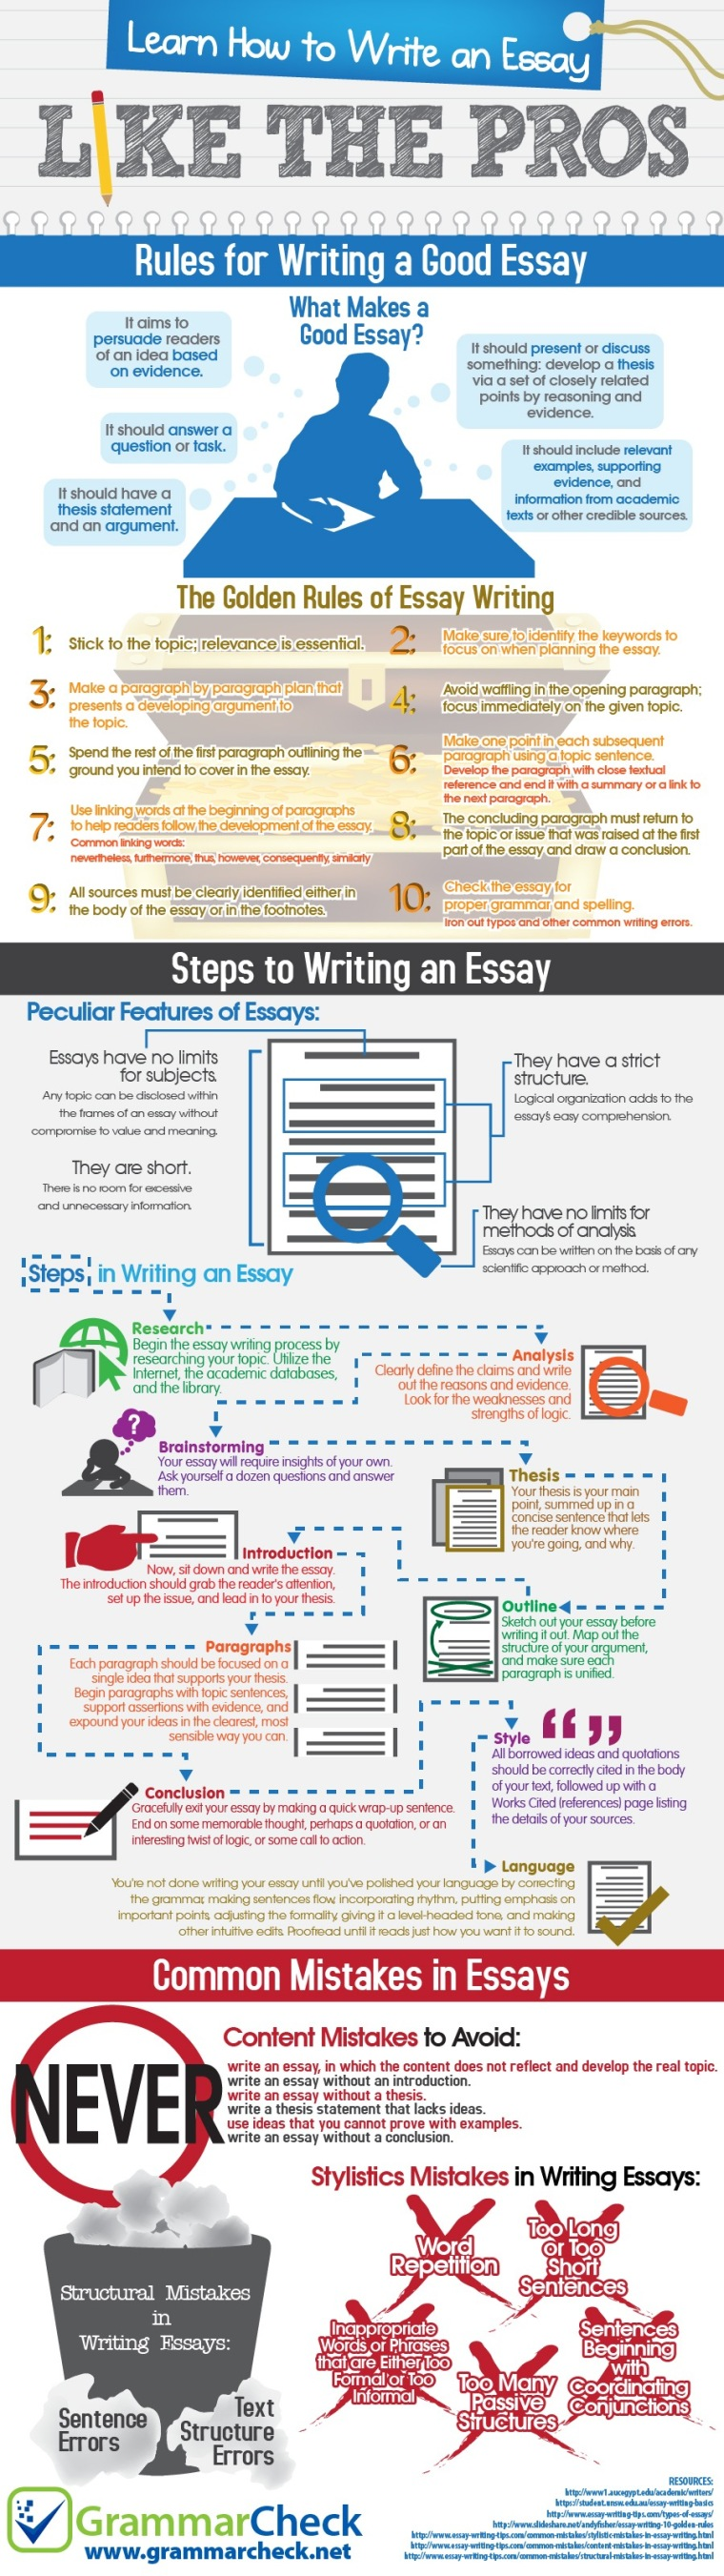 essays reading writing coffee did you this helpful please let me know in the comments